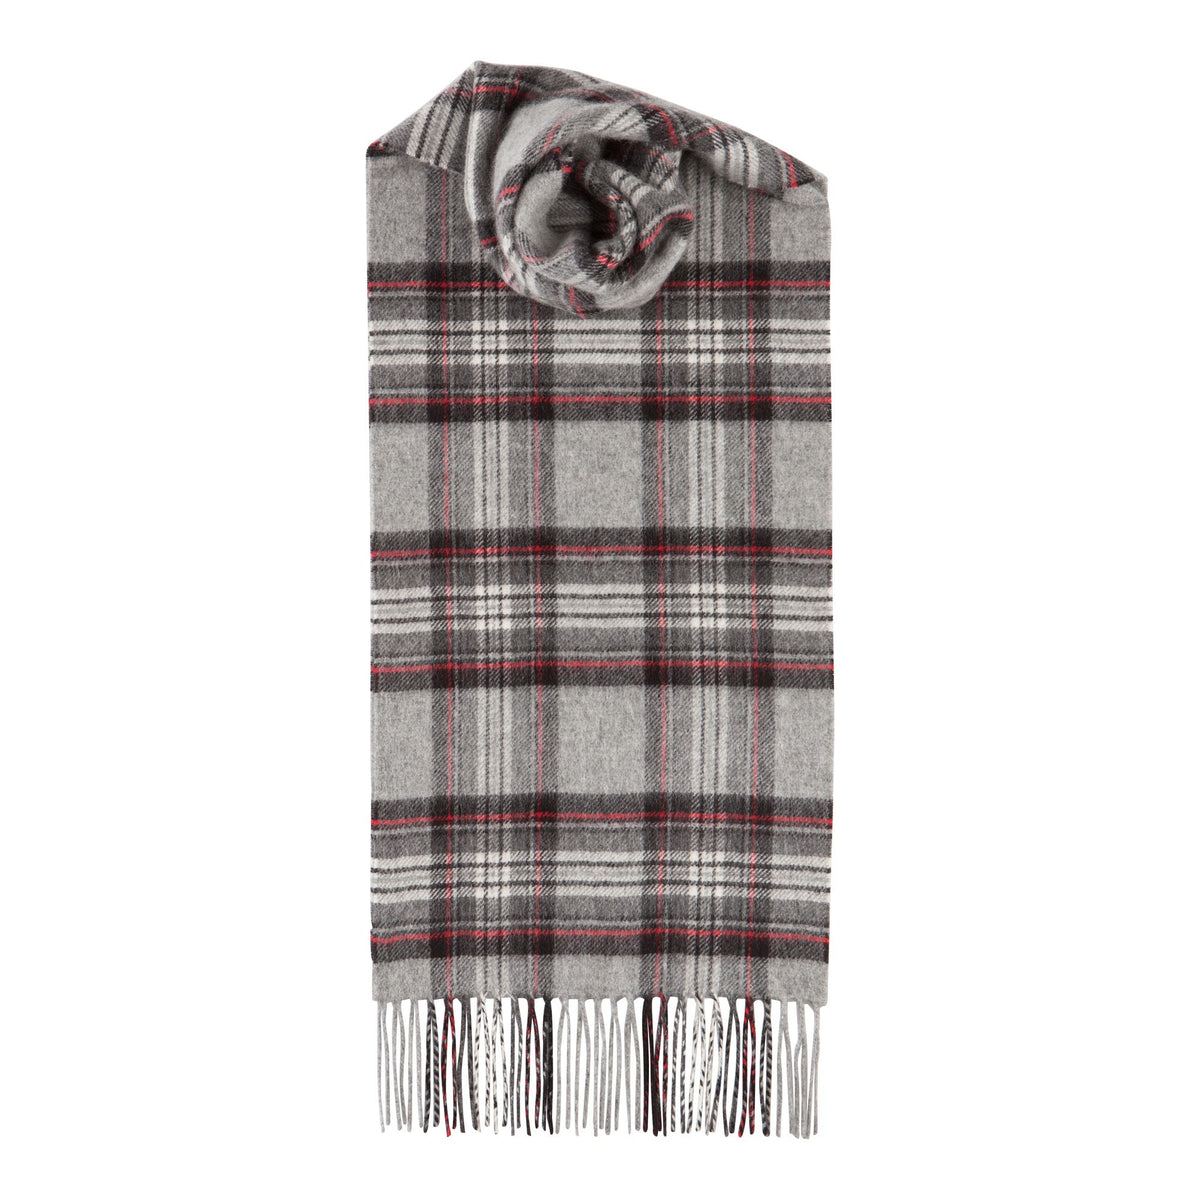 Johnsons of Elgin | Grey Stewart Tartan Check Cashmere Scarf | buy at The Cashmere Choice | London